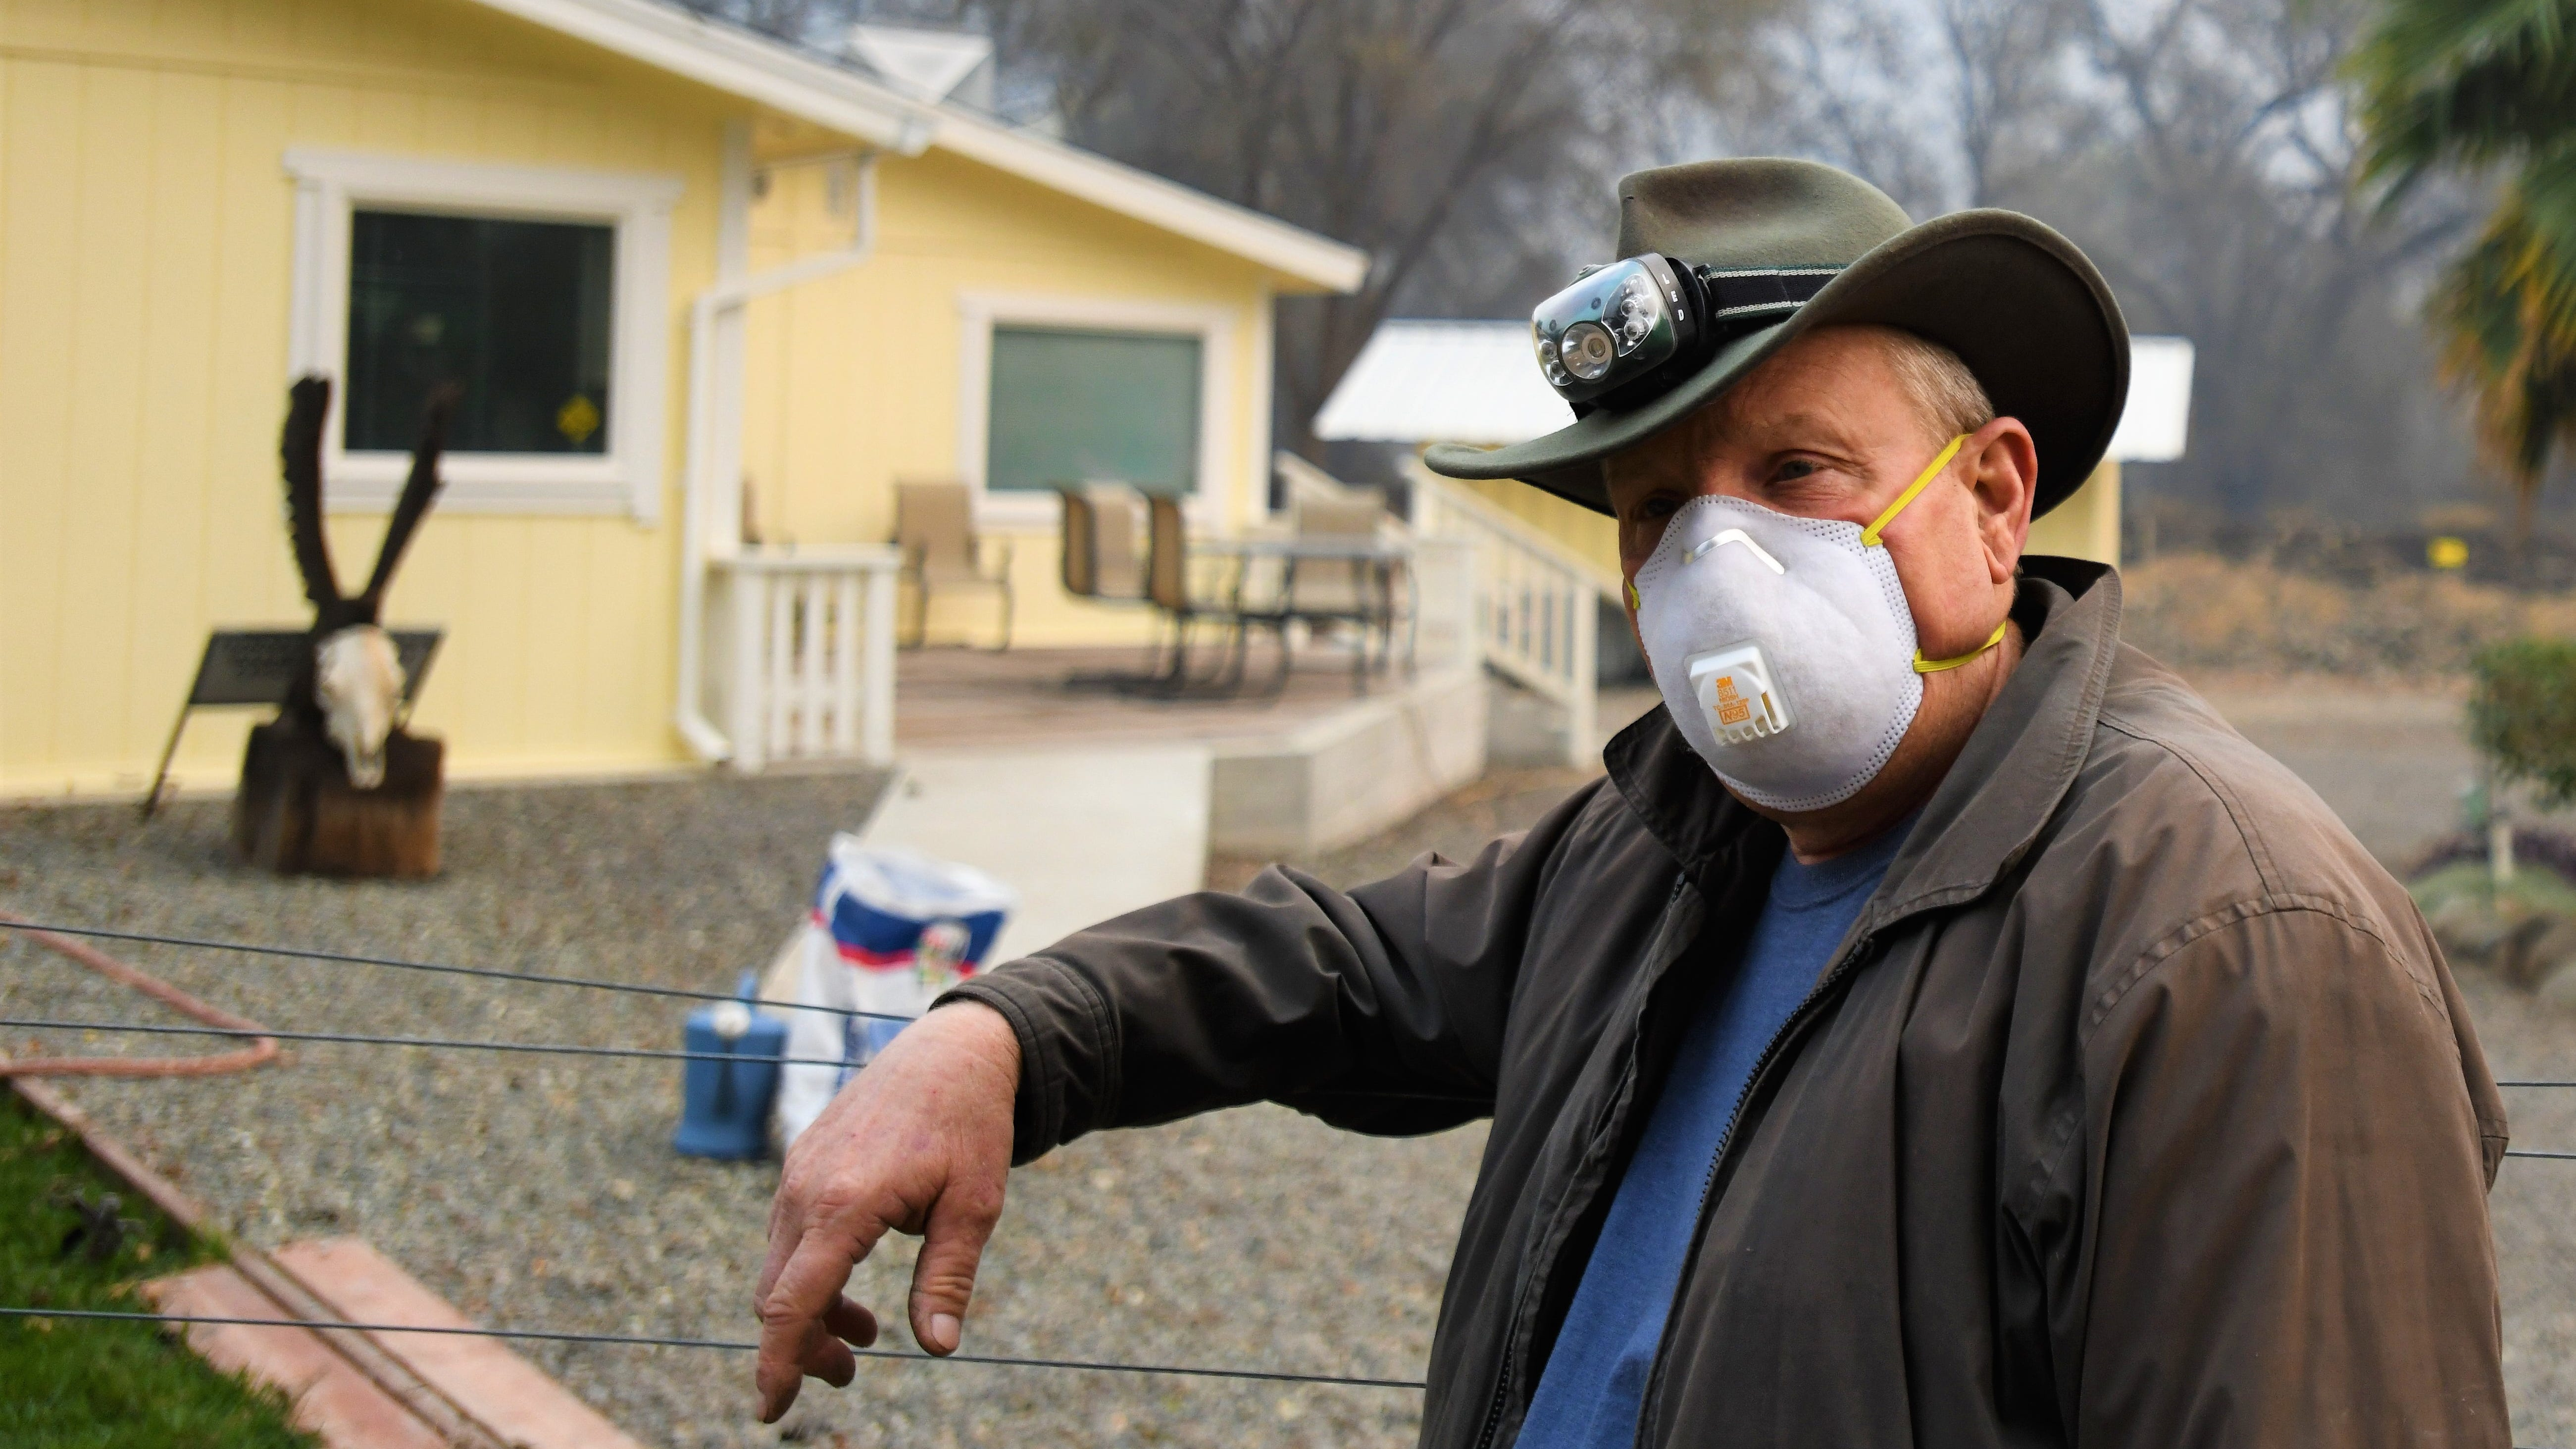 Tom Witherspoon, a nurse in Chico, California, chose to stay and protect his home in Butte Creek Canyon, about 6 miles southwest of Paradise, during the Nov. 8, 2018, Camp Fire. His house was well prepared to withstand the flames and survived, but many of his neighbors were not so lucky.